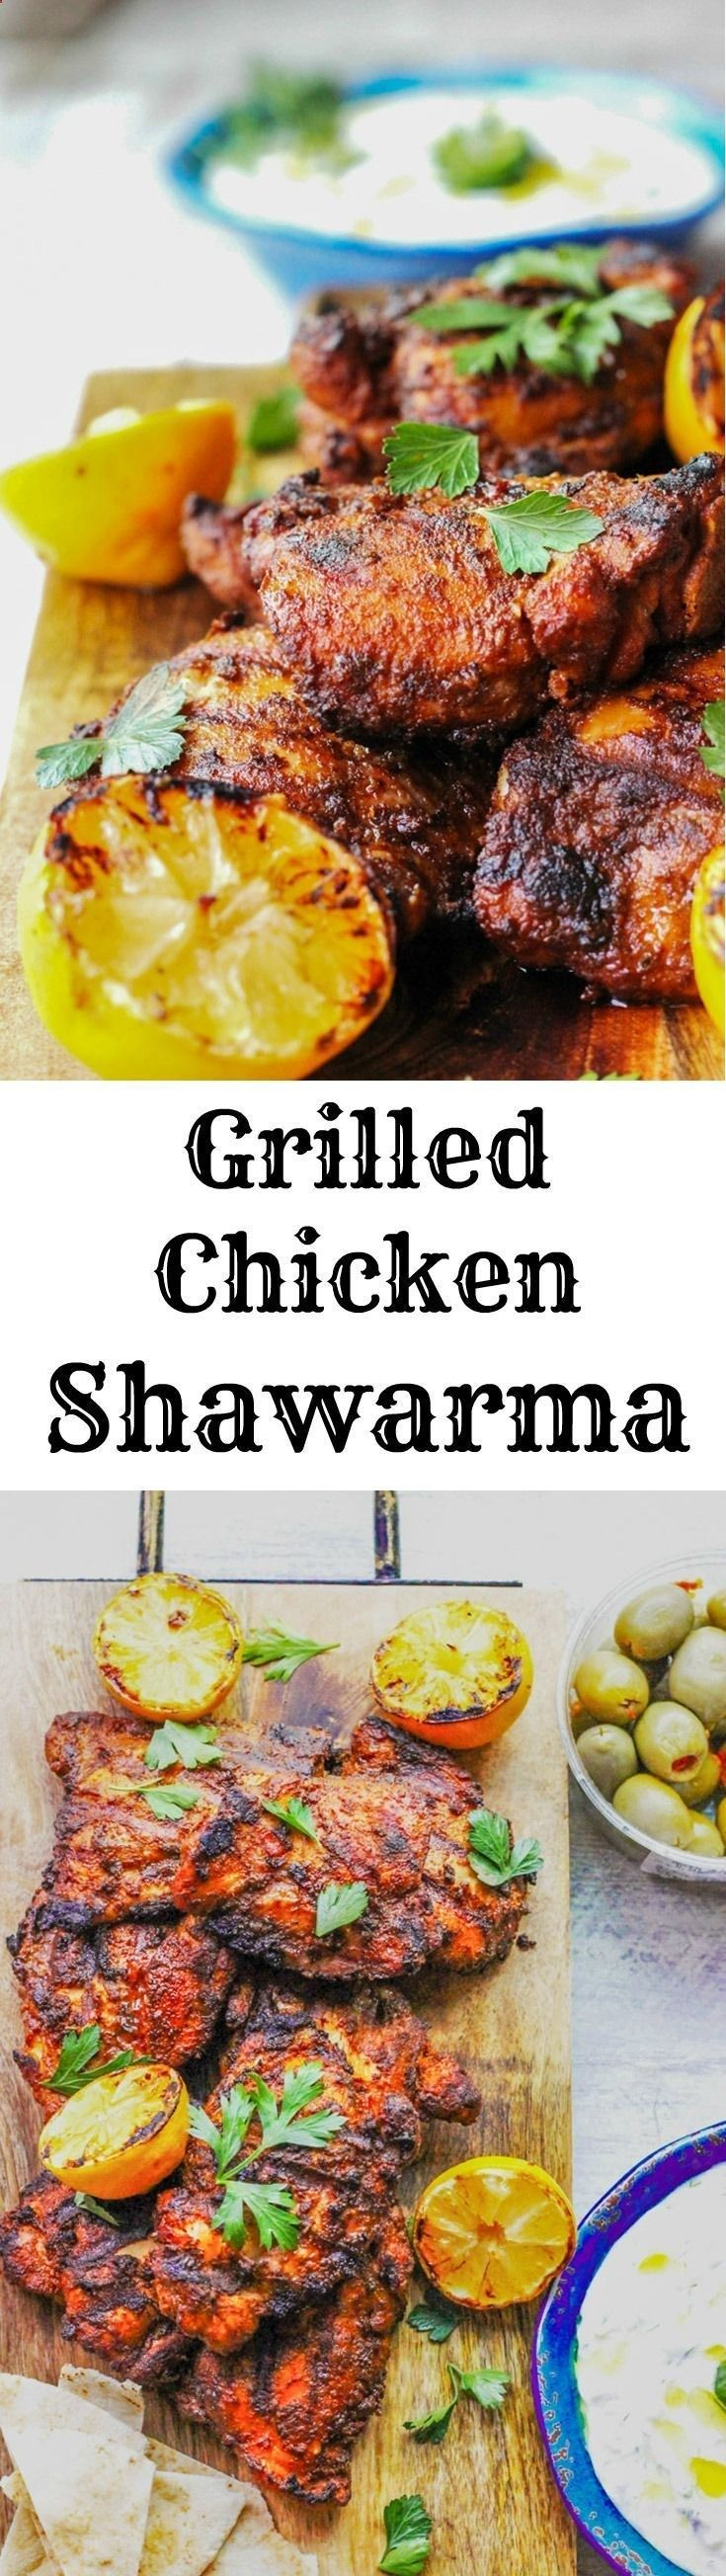 Grilled Chicken Shawarma is an amazing dish of Middle Eastern flavors that comes together super quick, smells divine and disappears from plates in seconds. Try this chicken recipe, full of fragrant spices, for your next BBQ and youll surely wow all your guests.